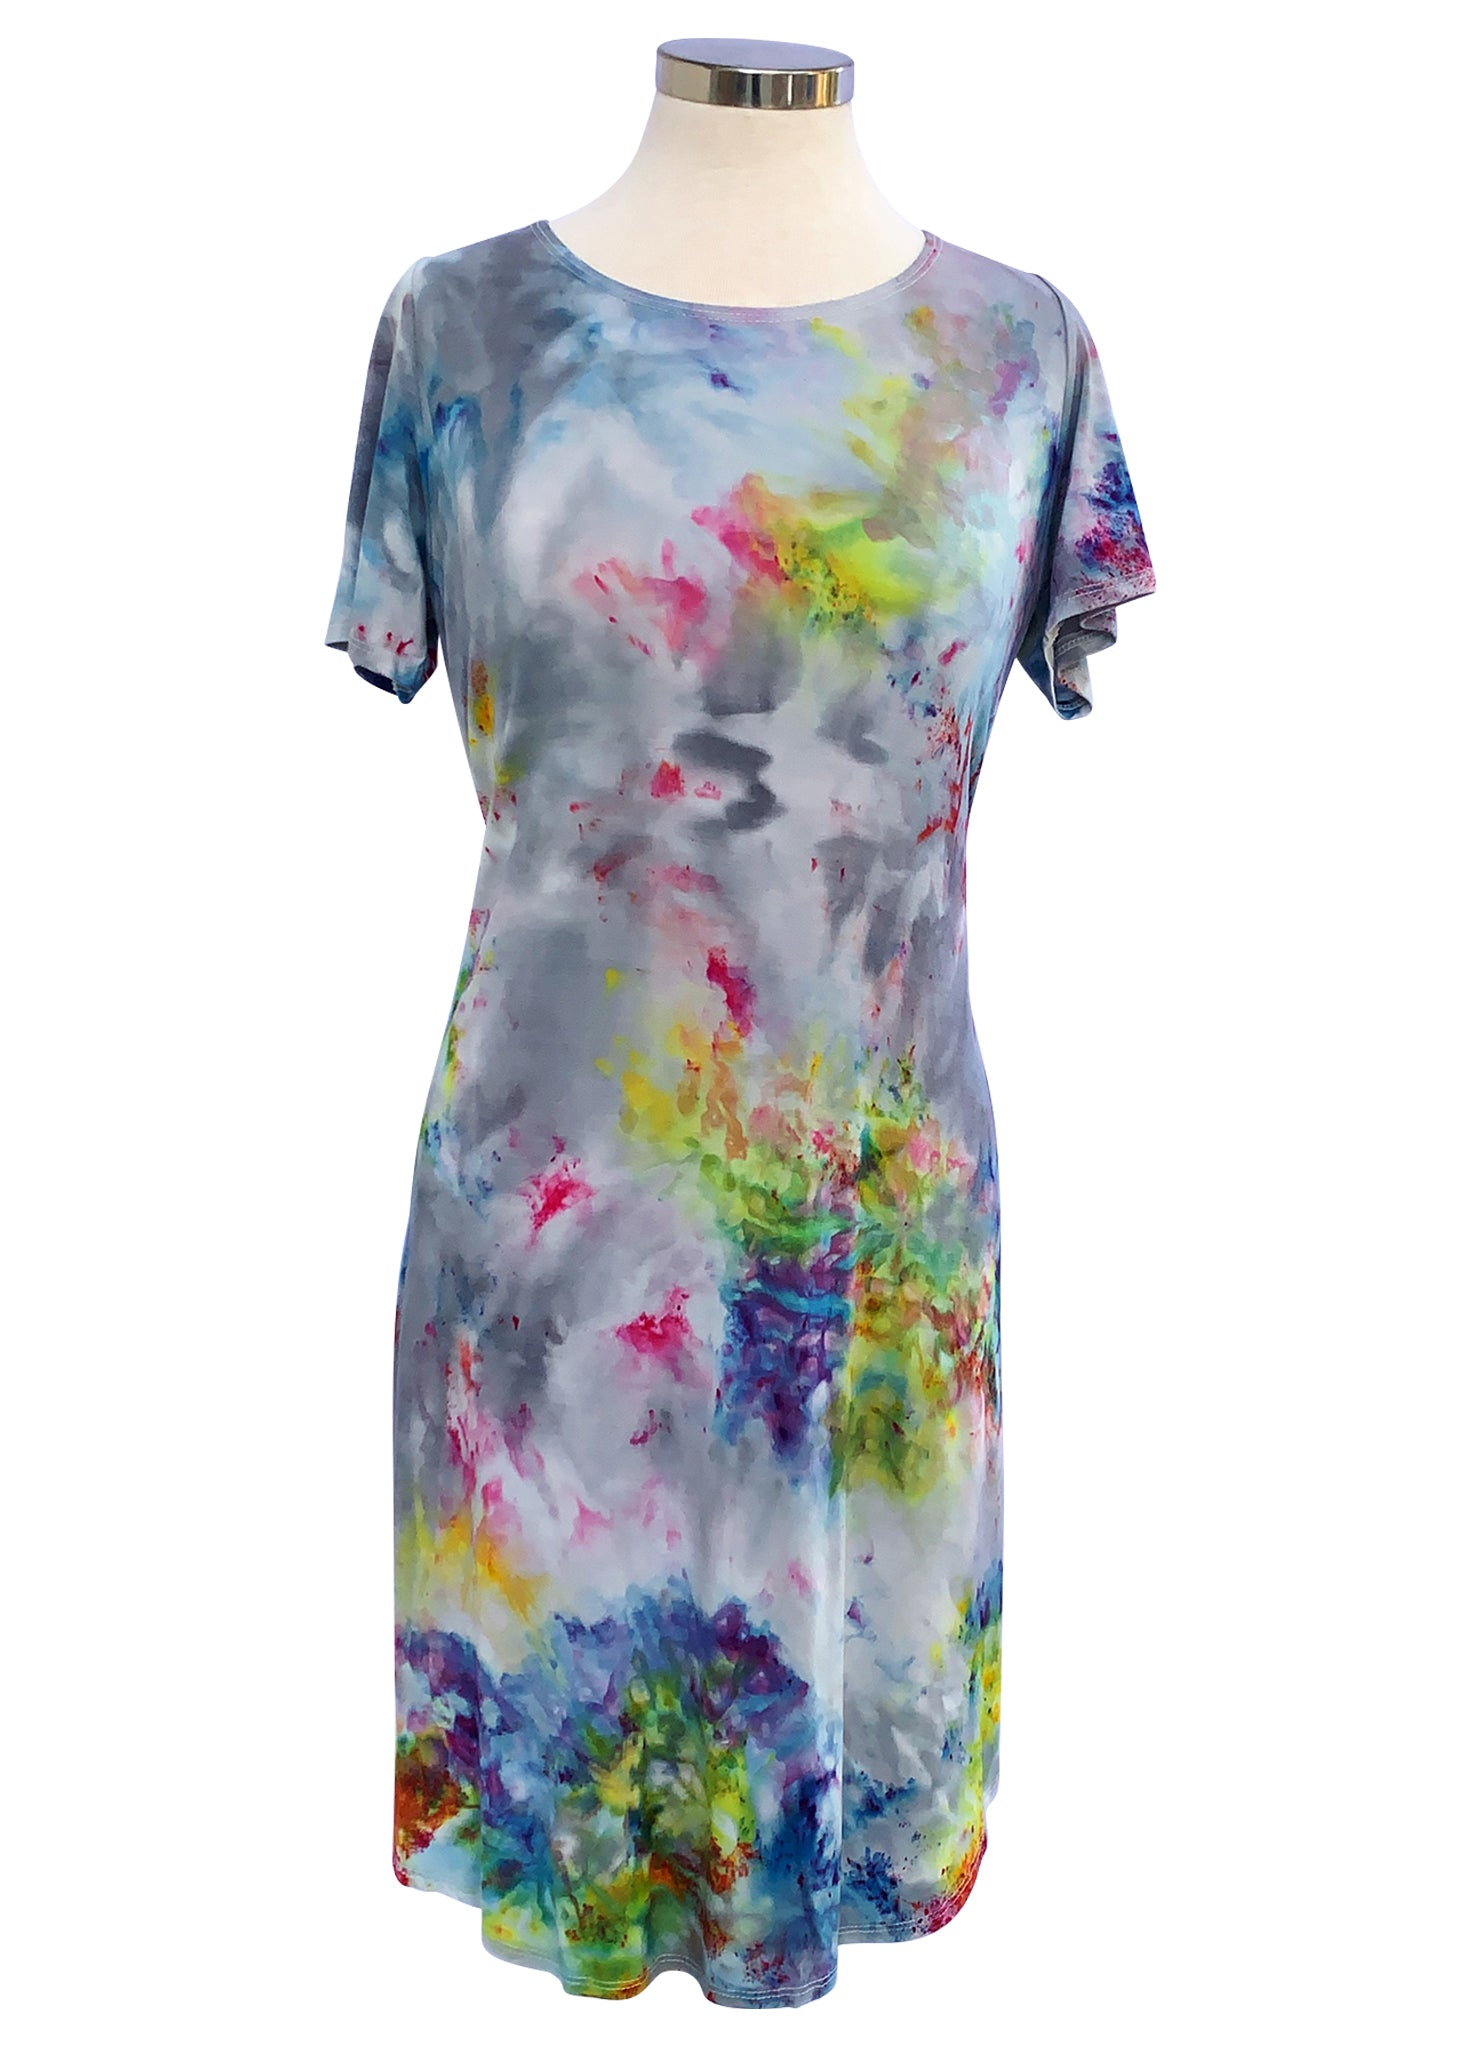 The Perfect Short Sleeve Dress in Candy Land - Dress - Dyetology